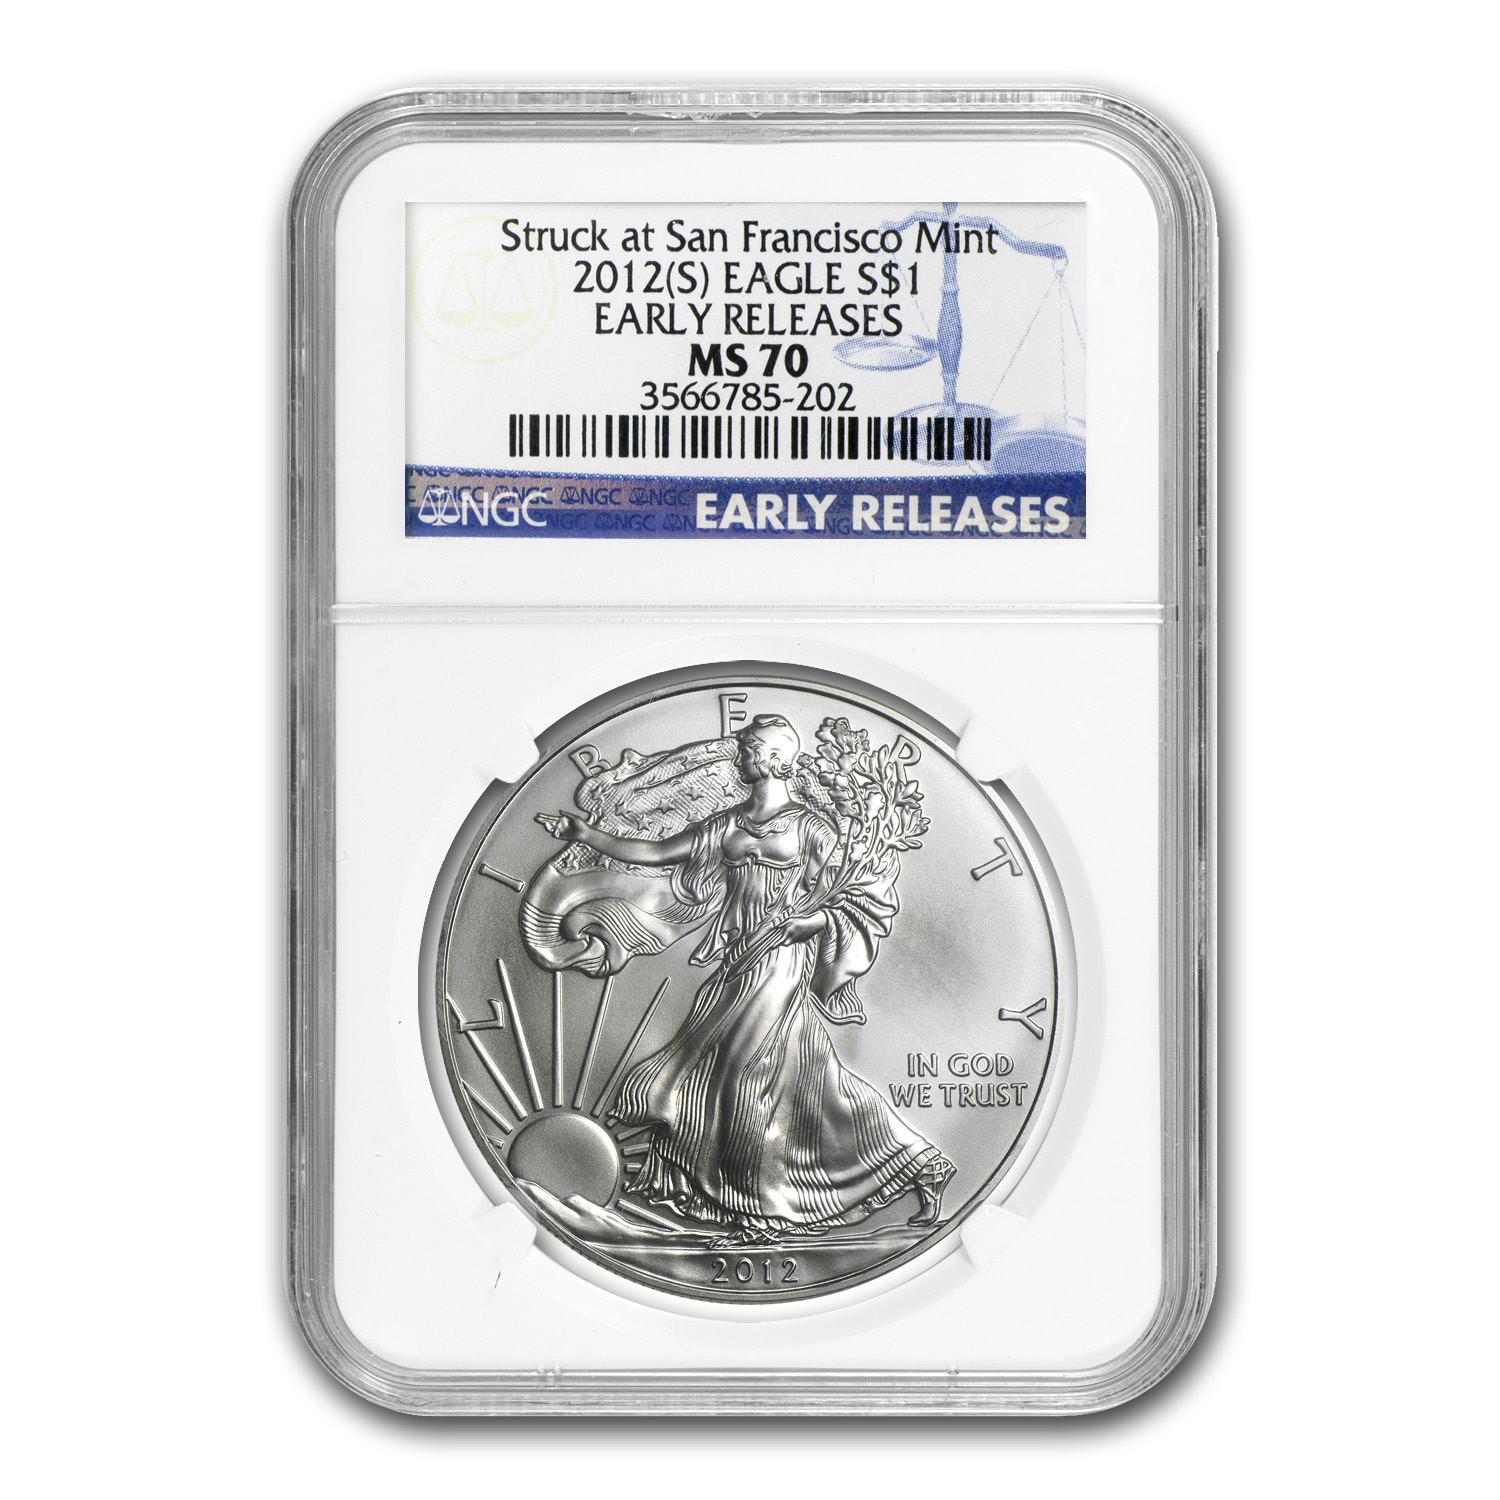 2012 (S) Silver American Eagle MS-70 NGC (Early Releases)